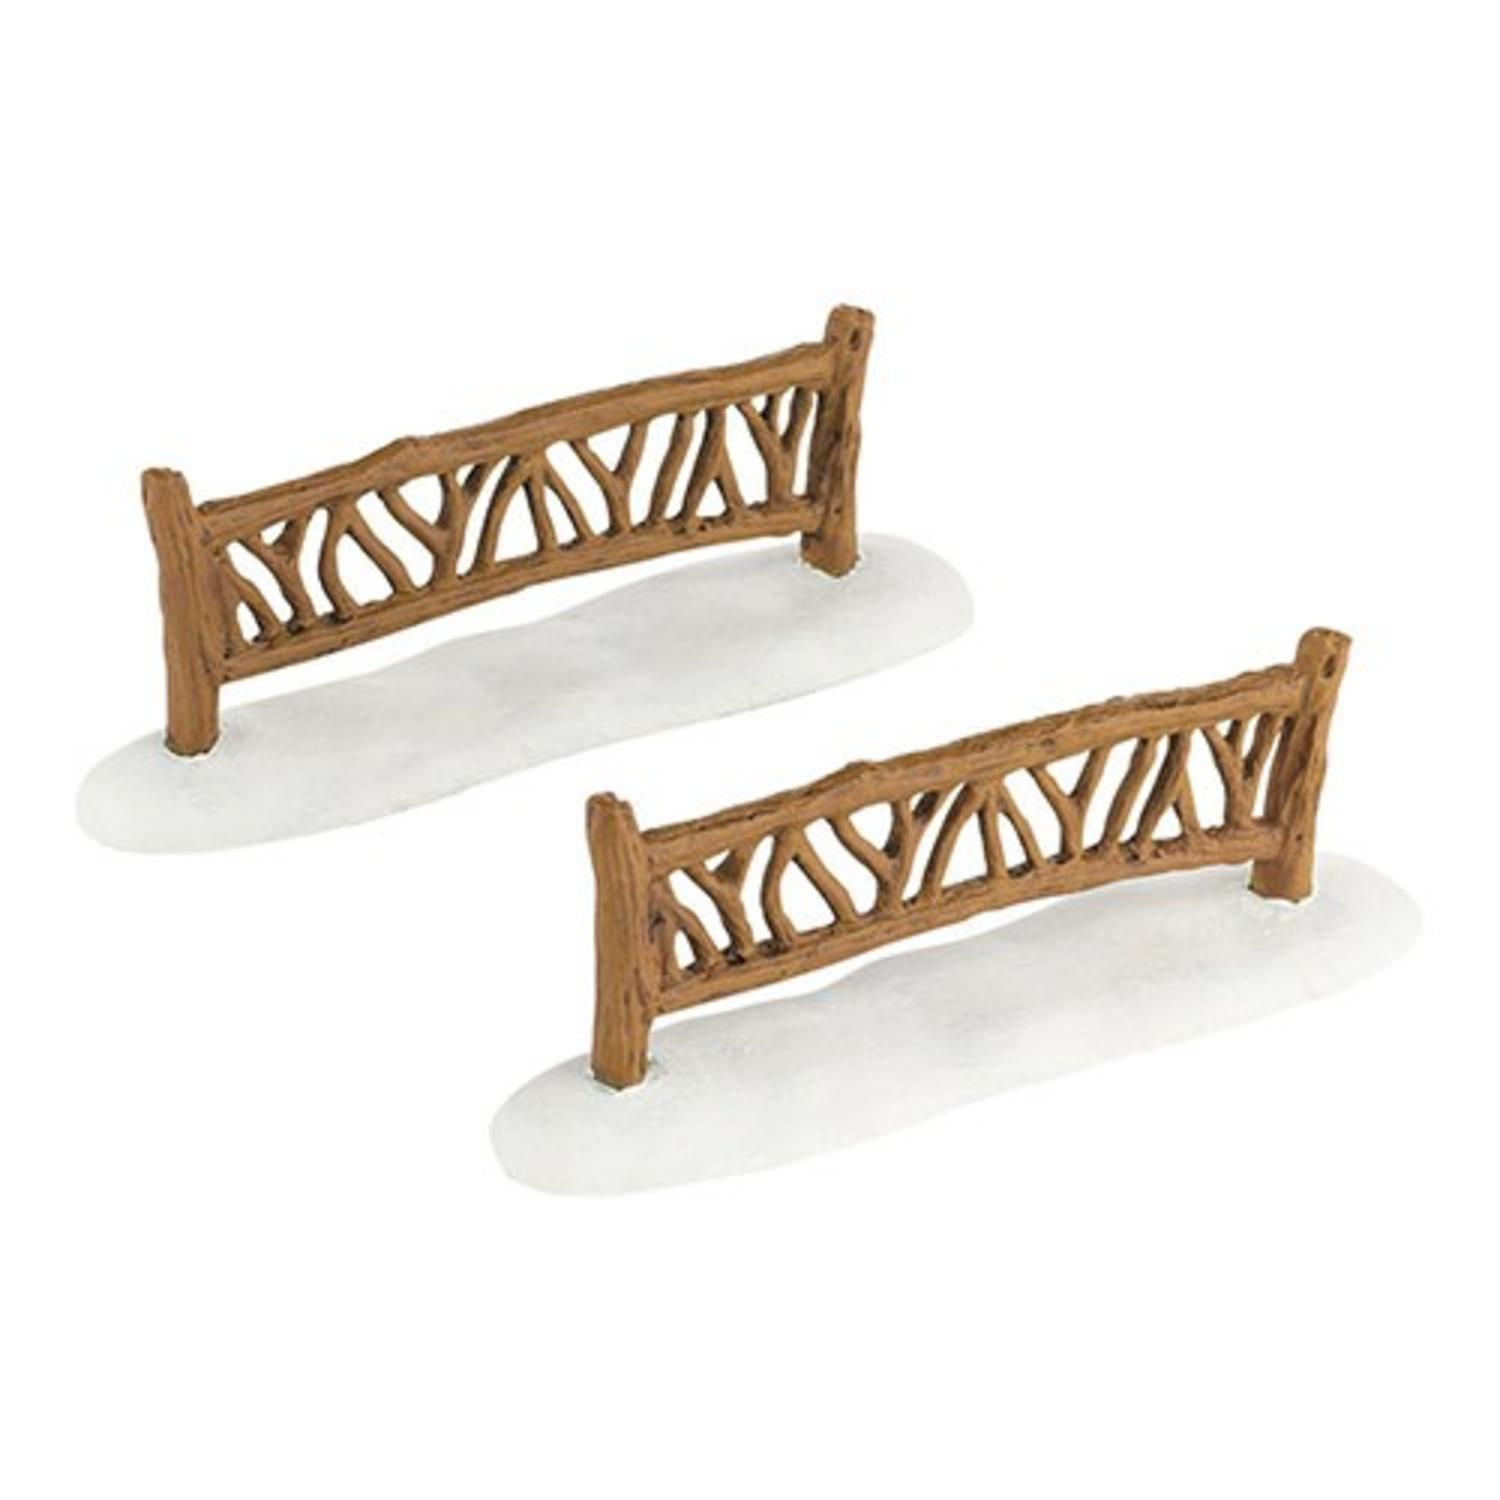 "Département 56 Snow Village ""Mon jardin Fence"" 2-Piece Accessory Set # 4033839"